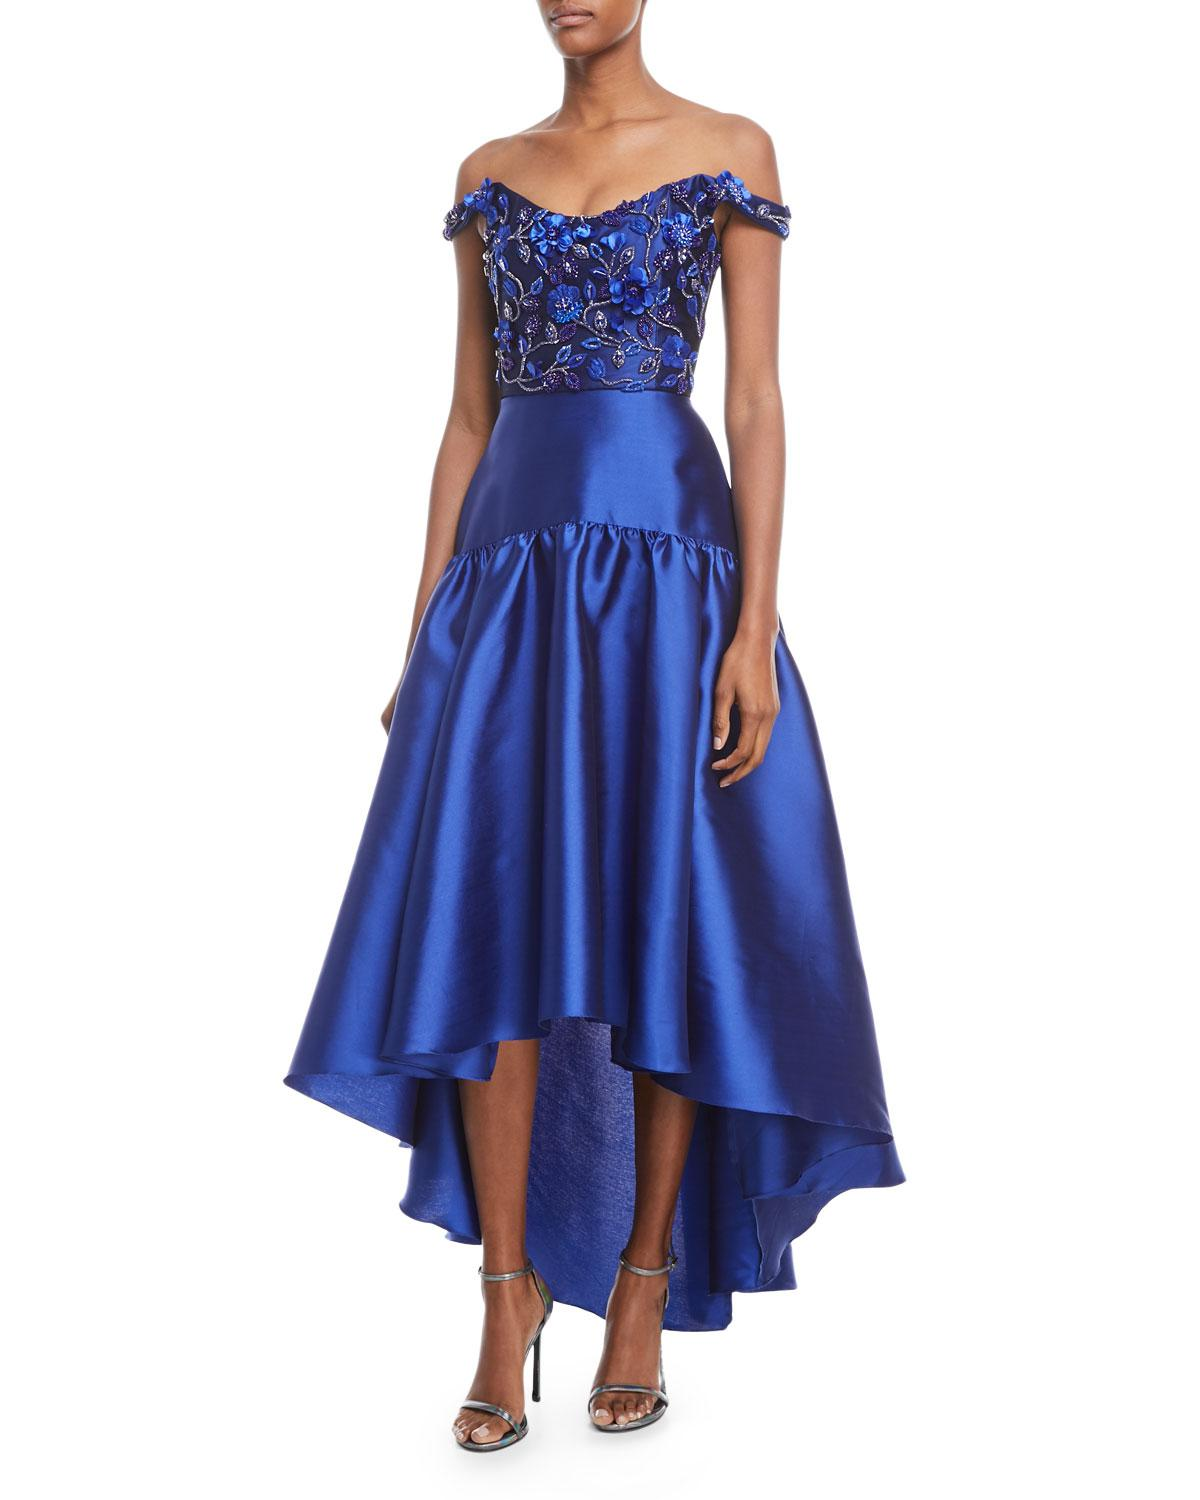 affd9f02 Marchesa notte High-low Mikado Gown W/ Bead Embroidered Bodice in ...